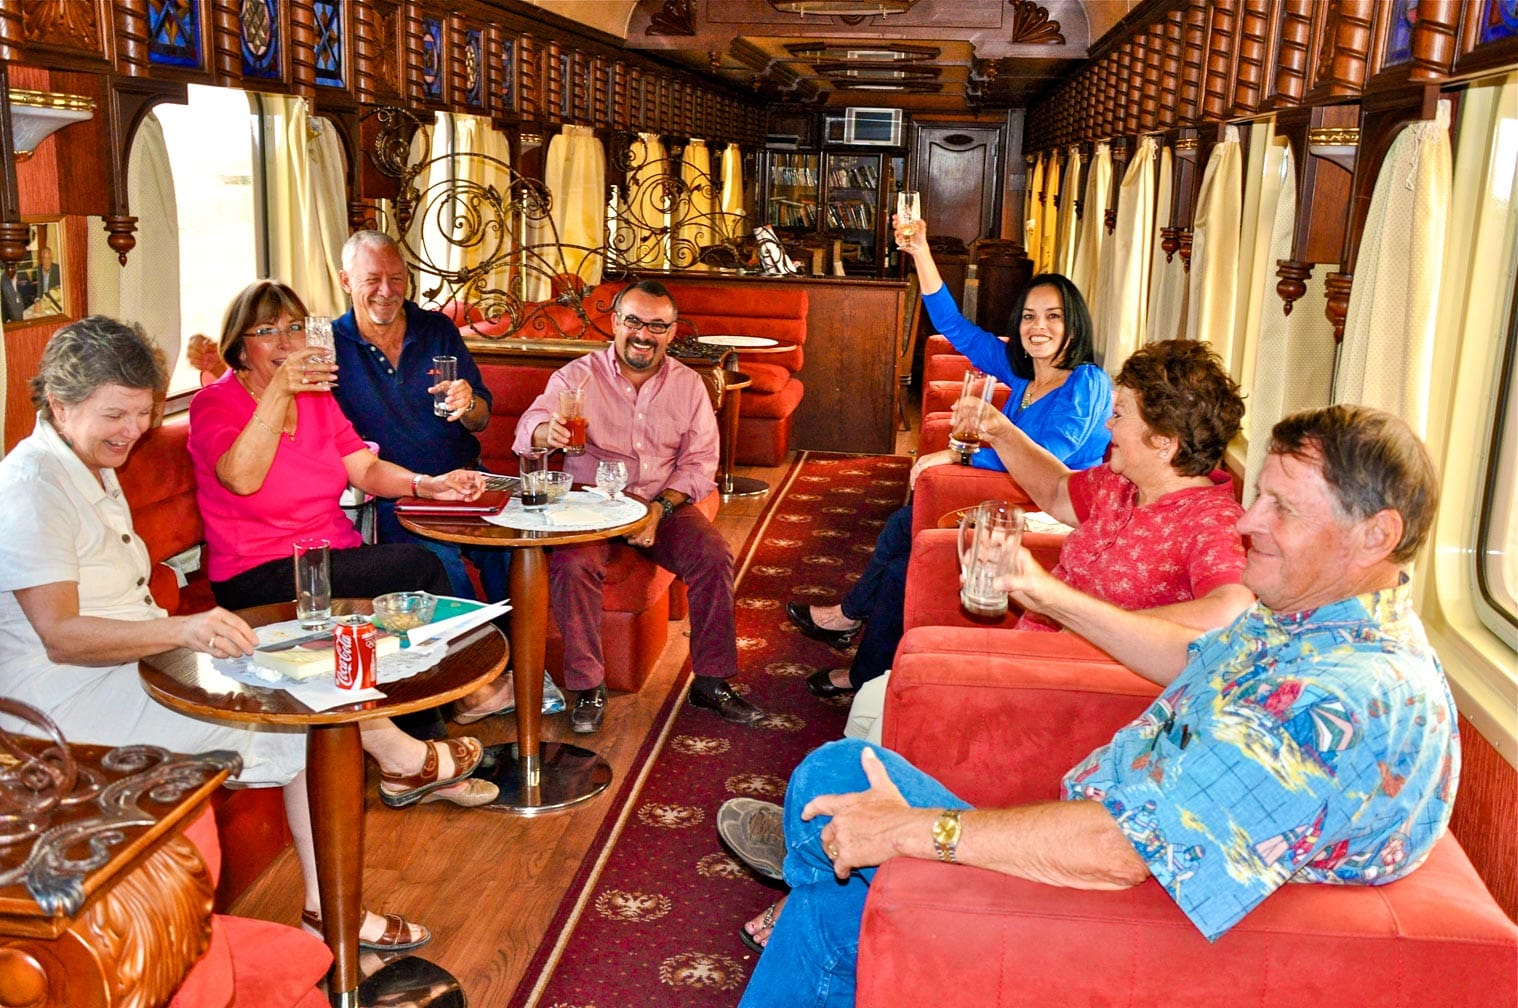 Guests sitting on the Golden Eagle train